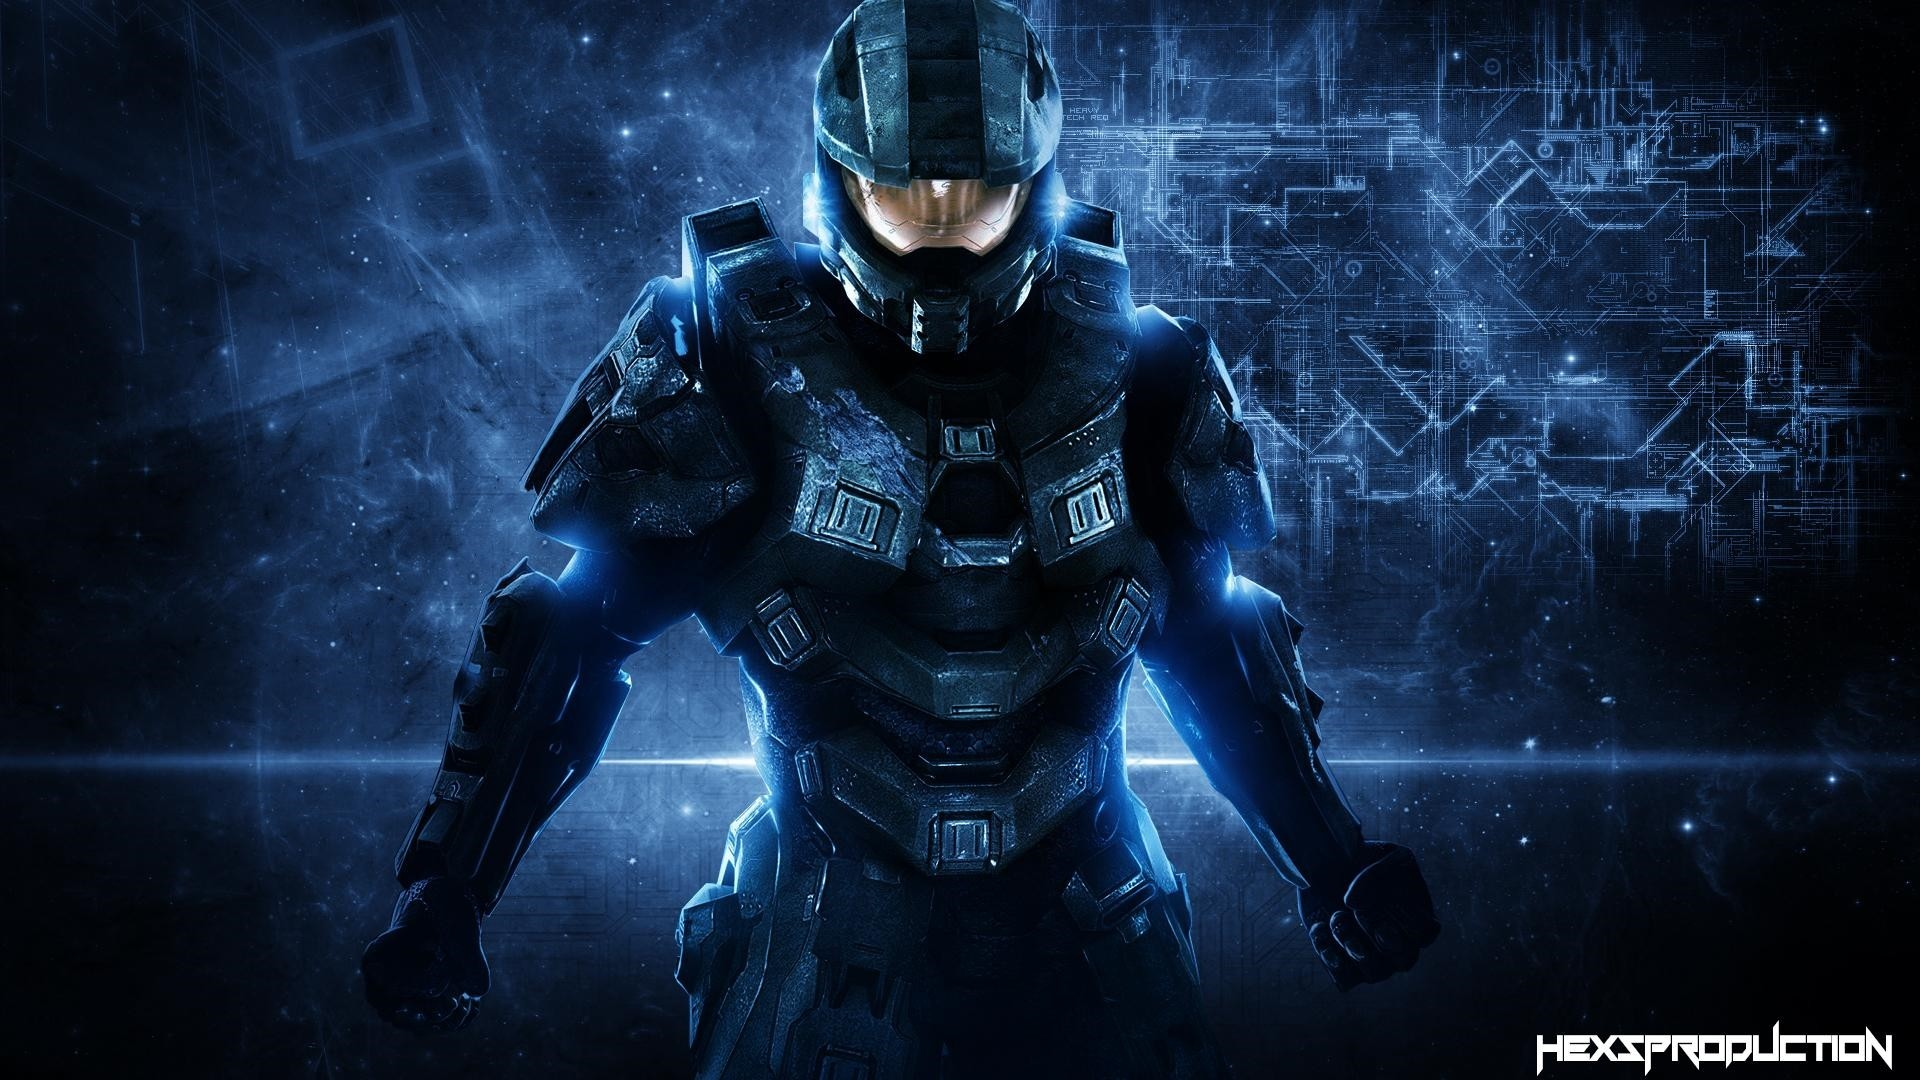 Related Wallpapers. halo 5 hd background